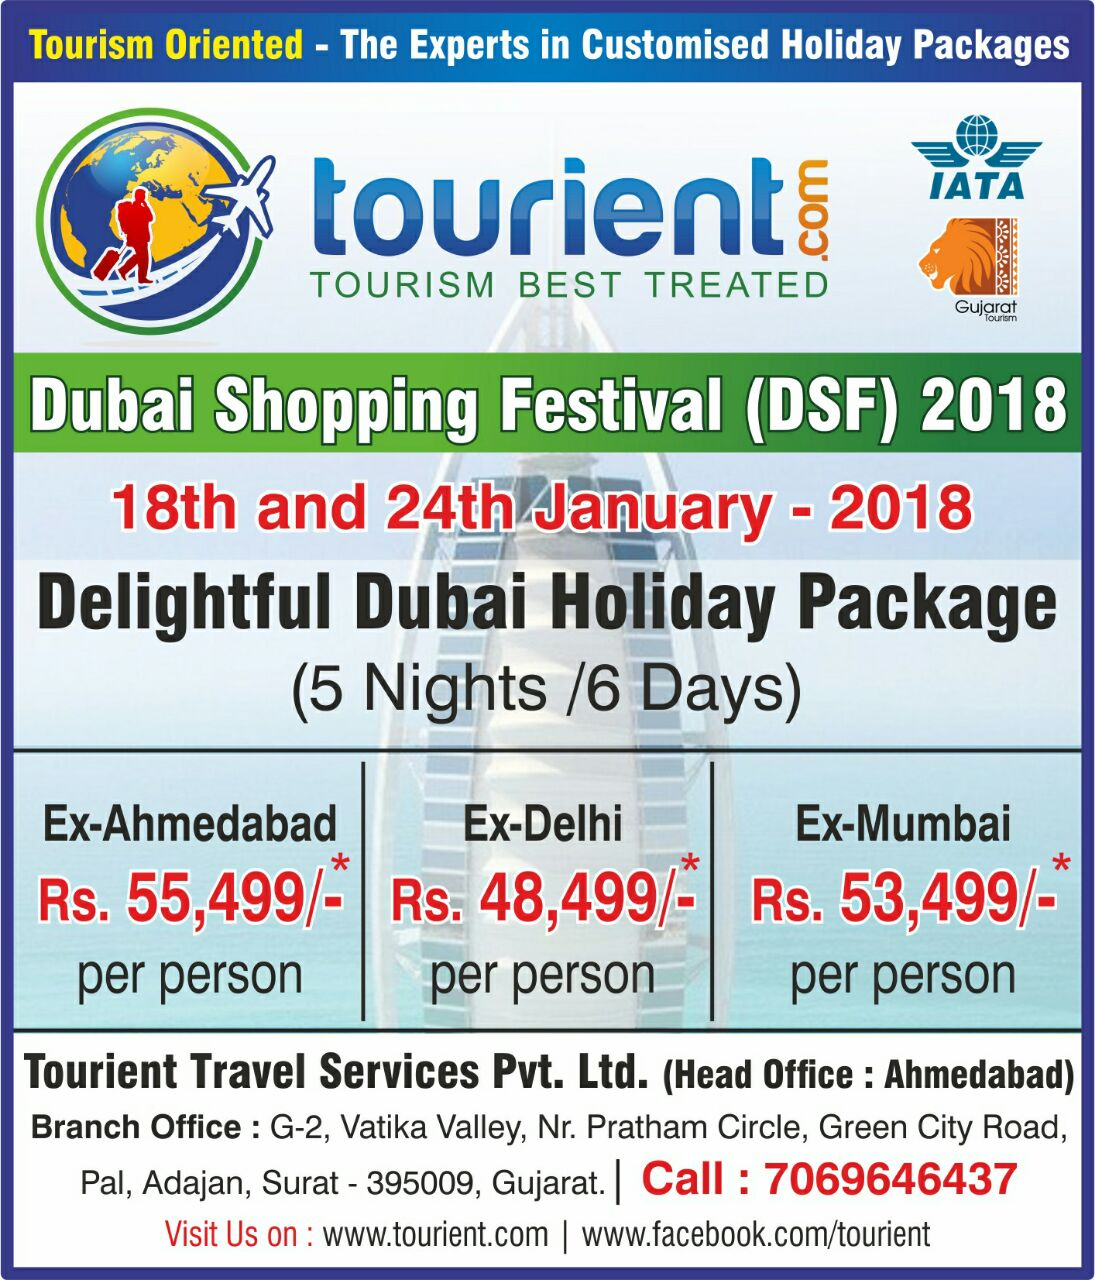 Get ready to explore Dubai on Dubai Shopping Festival in January 2018. Tourient is delighted to offer special Dubai Holiday Package with the best rates.   Book your Dubai Tour Package now before seats get sold out!